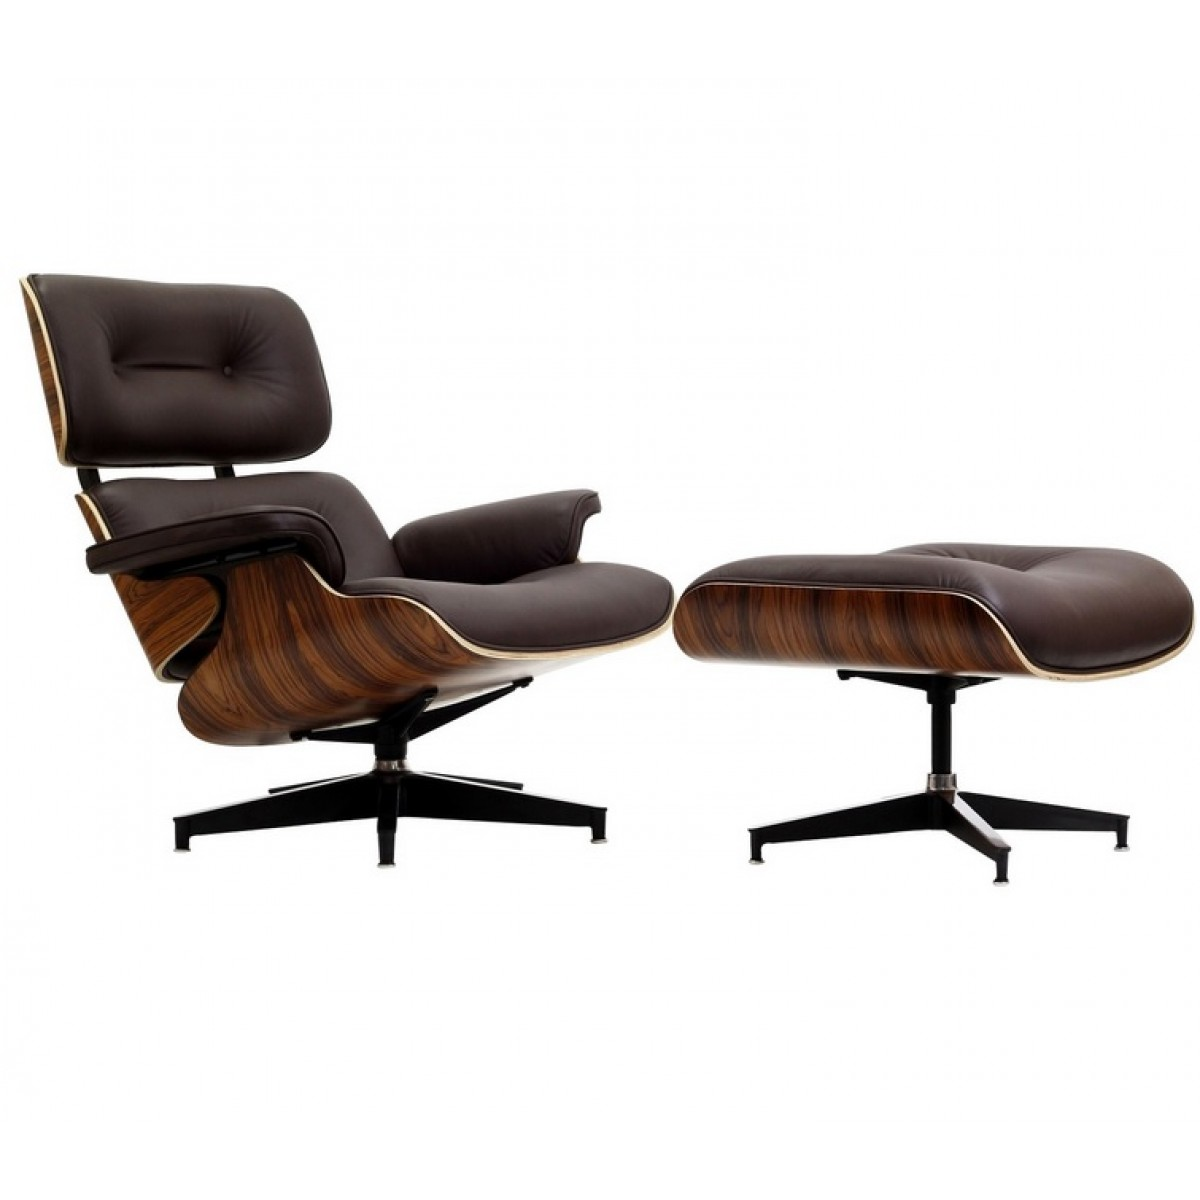 eames style lounge chair and ottoman brown leather walnut wood replica. Black Bedroom Furniture Sets. Home Design Ideas